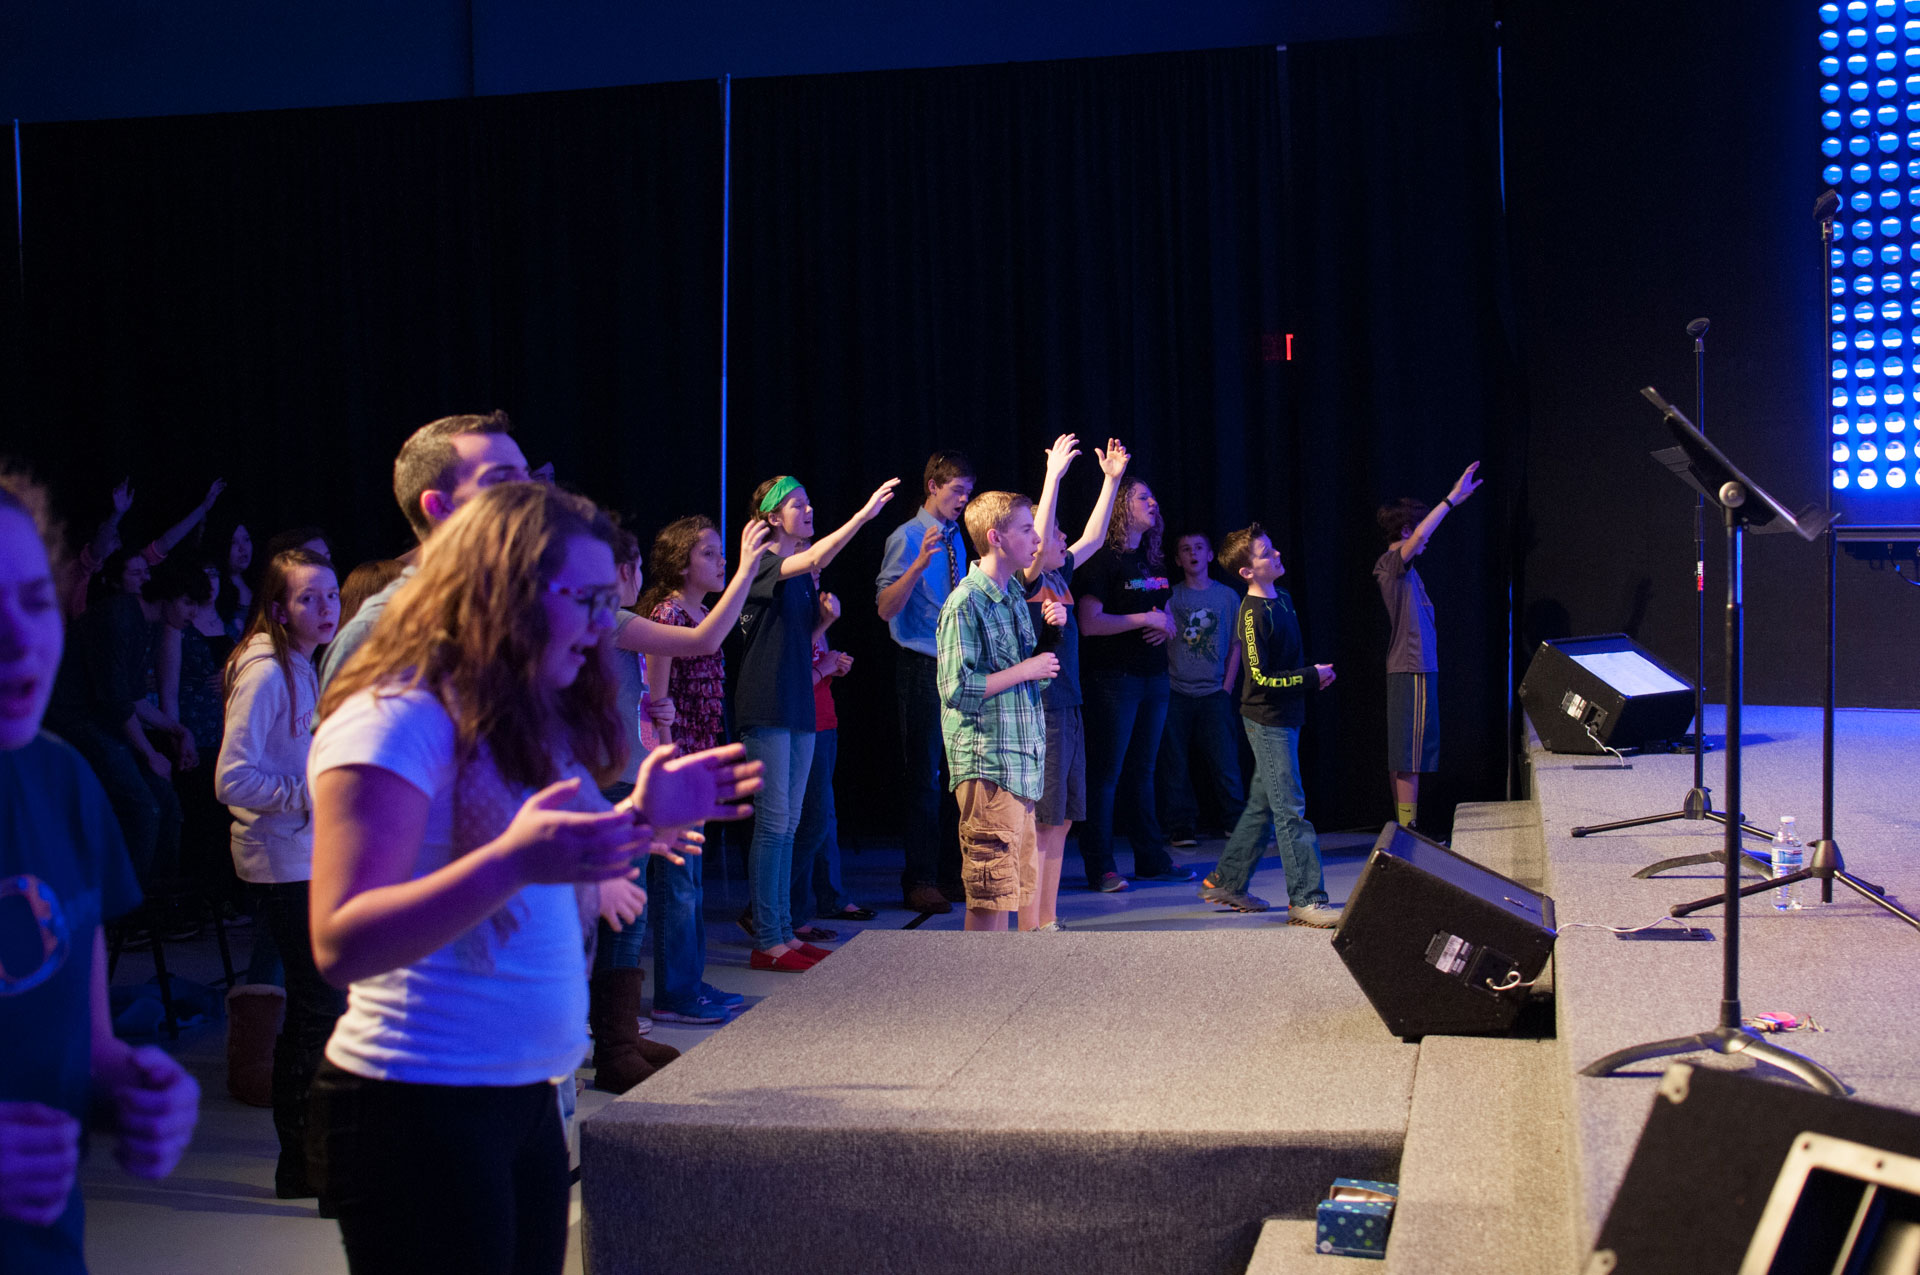 teens worshiping